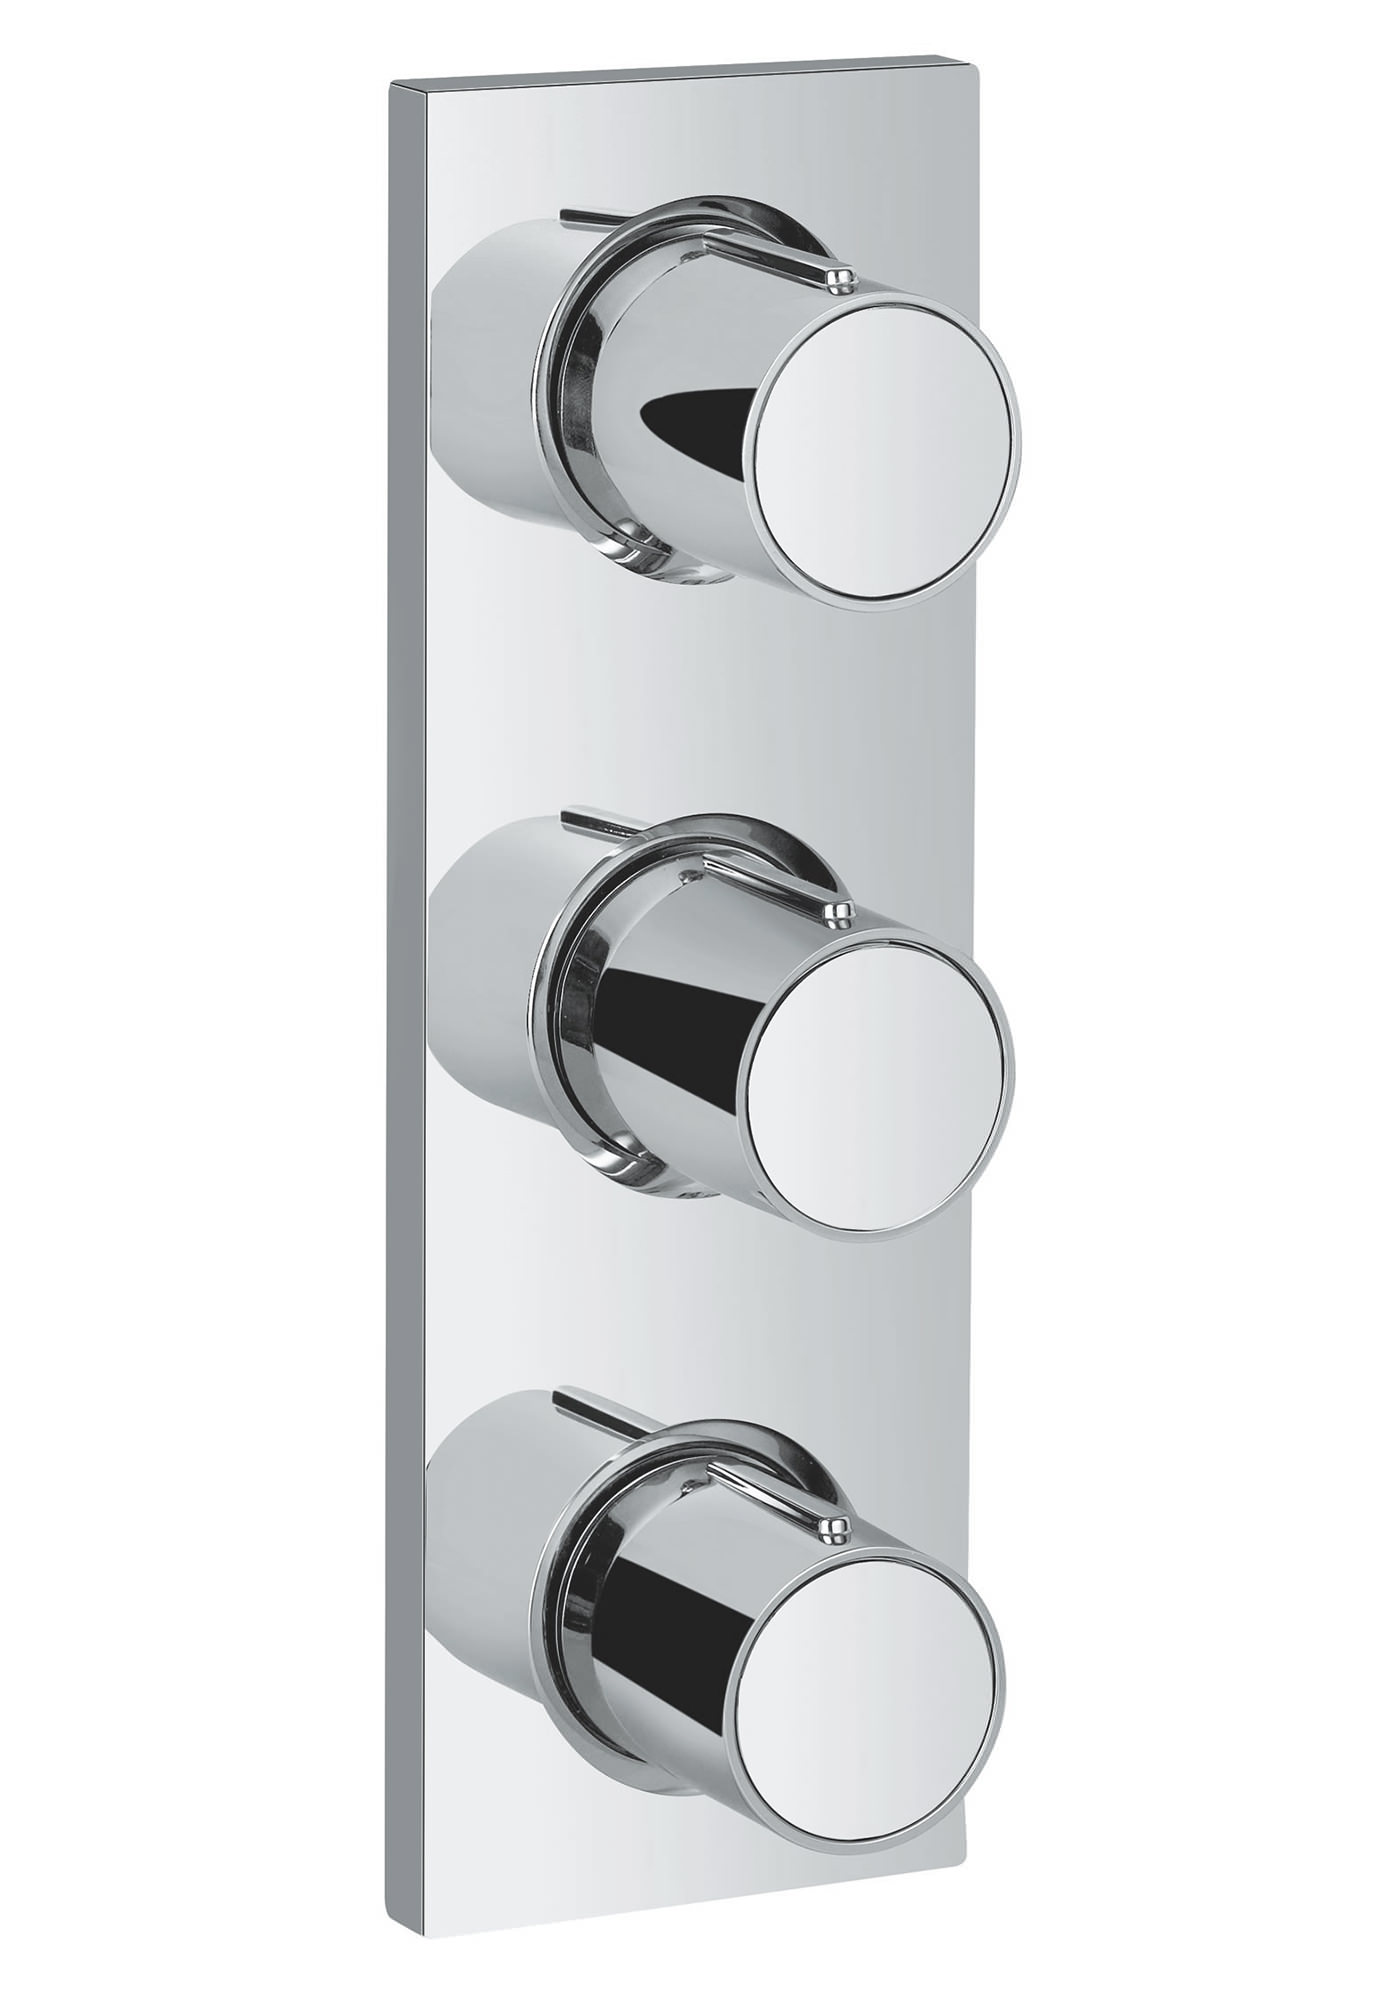 Grohe Spa Grohtherm F Trim Concealed Shower Valve With Triple Volume ...